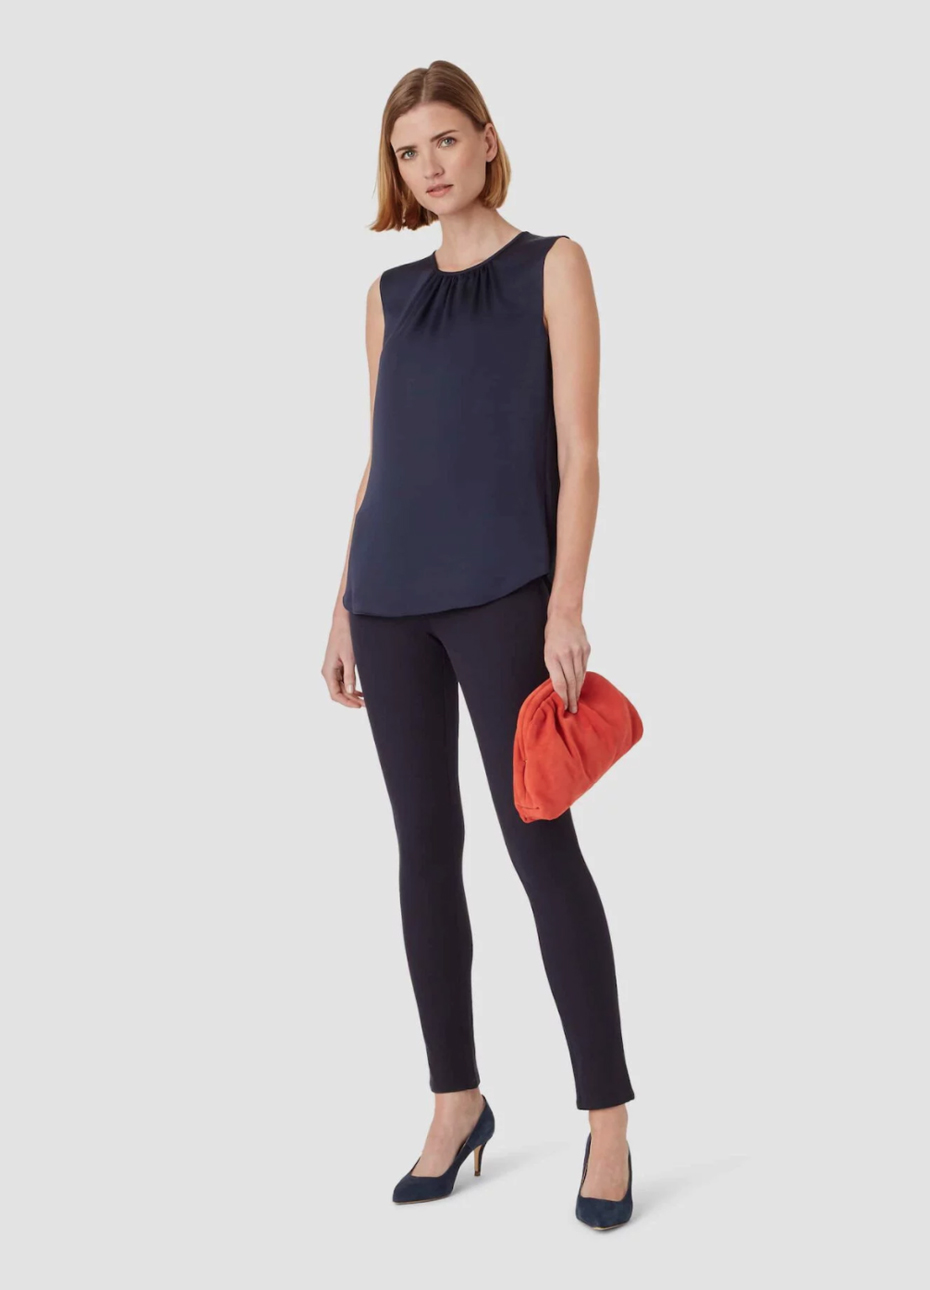 Dark navy top worn with black denim jeans, black court shoes and a red clutch bag by Hobbs.